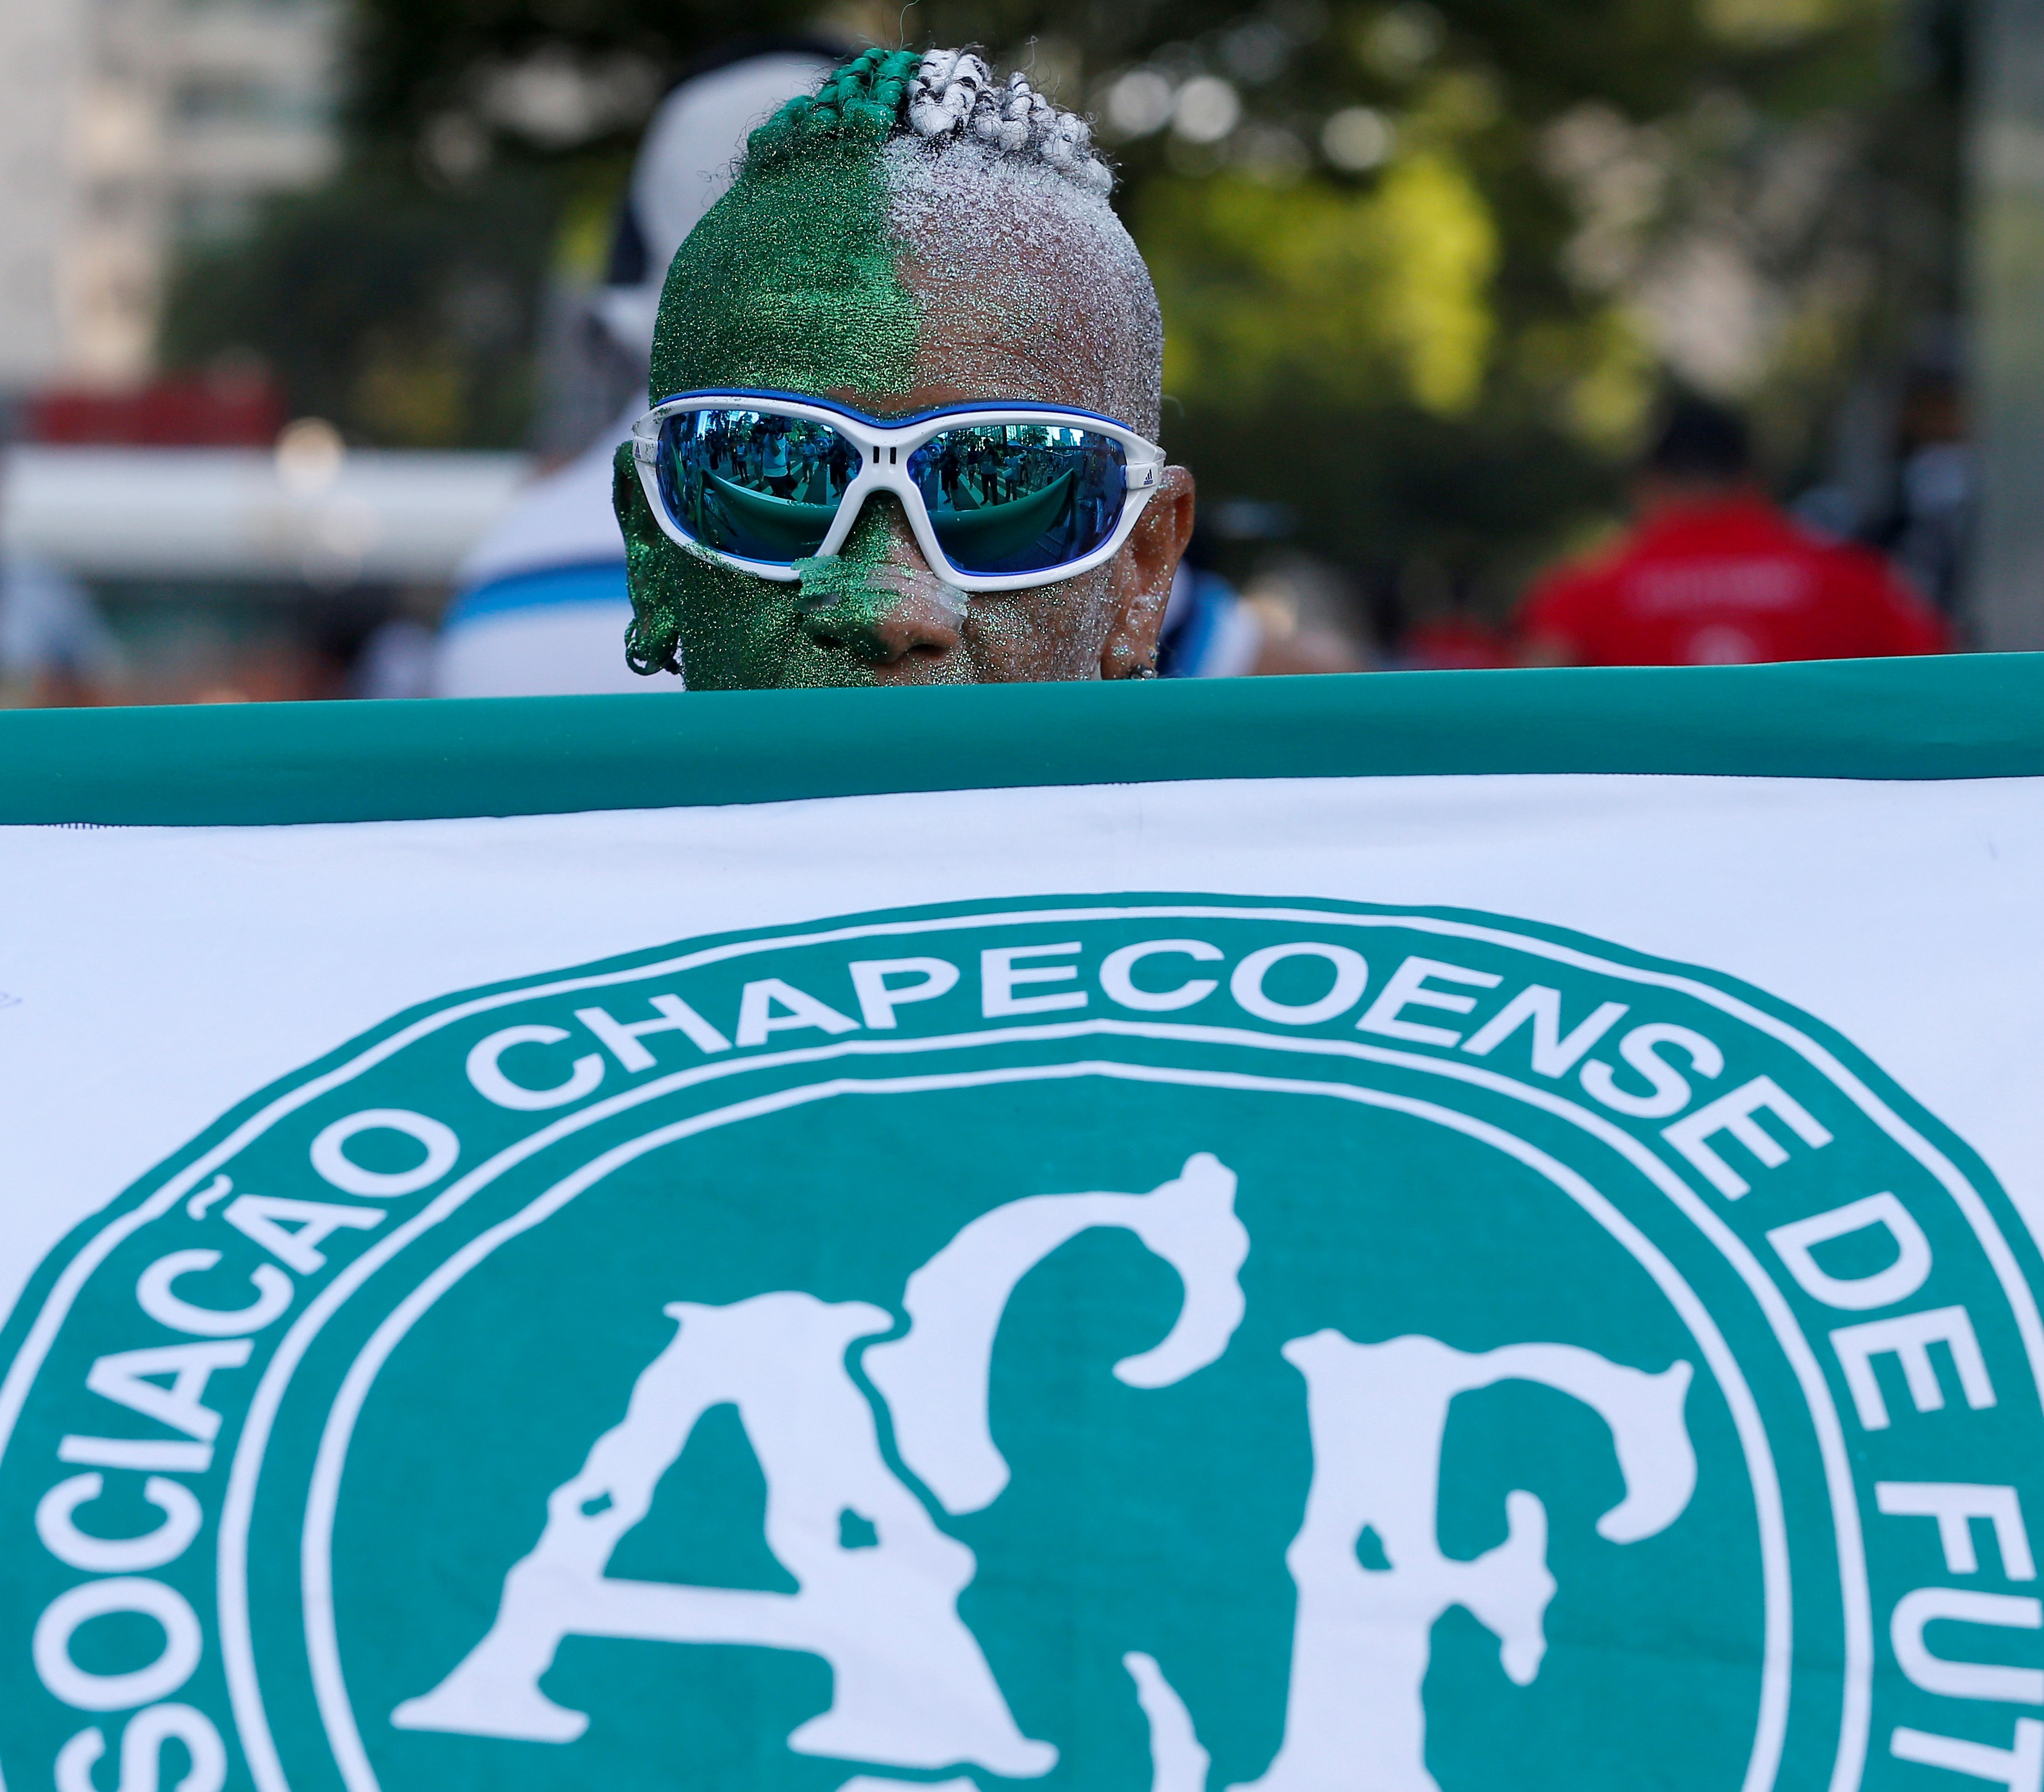 Brazilian runner supporting soccer team Chapecoense during Sao Silvestre international race in Sao Paulo, Brazil, Dec. 31, 2016.